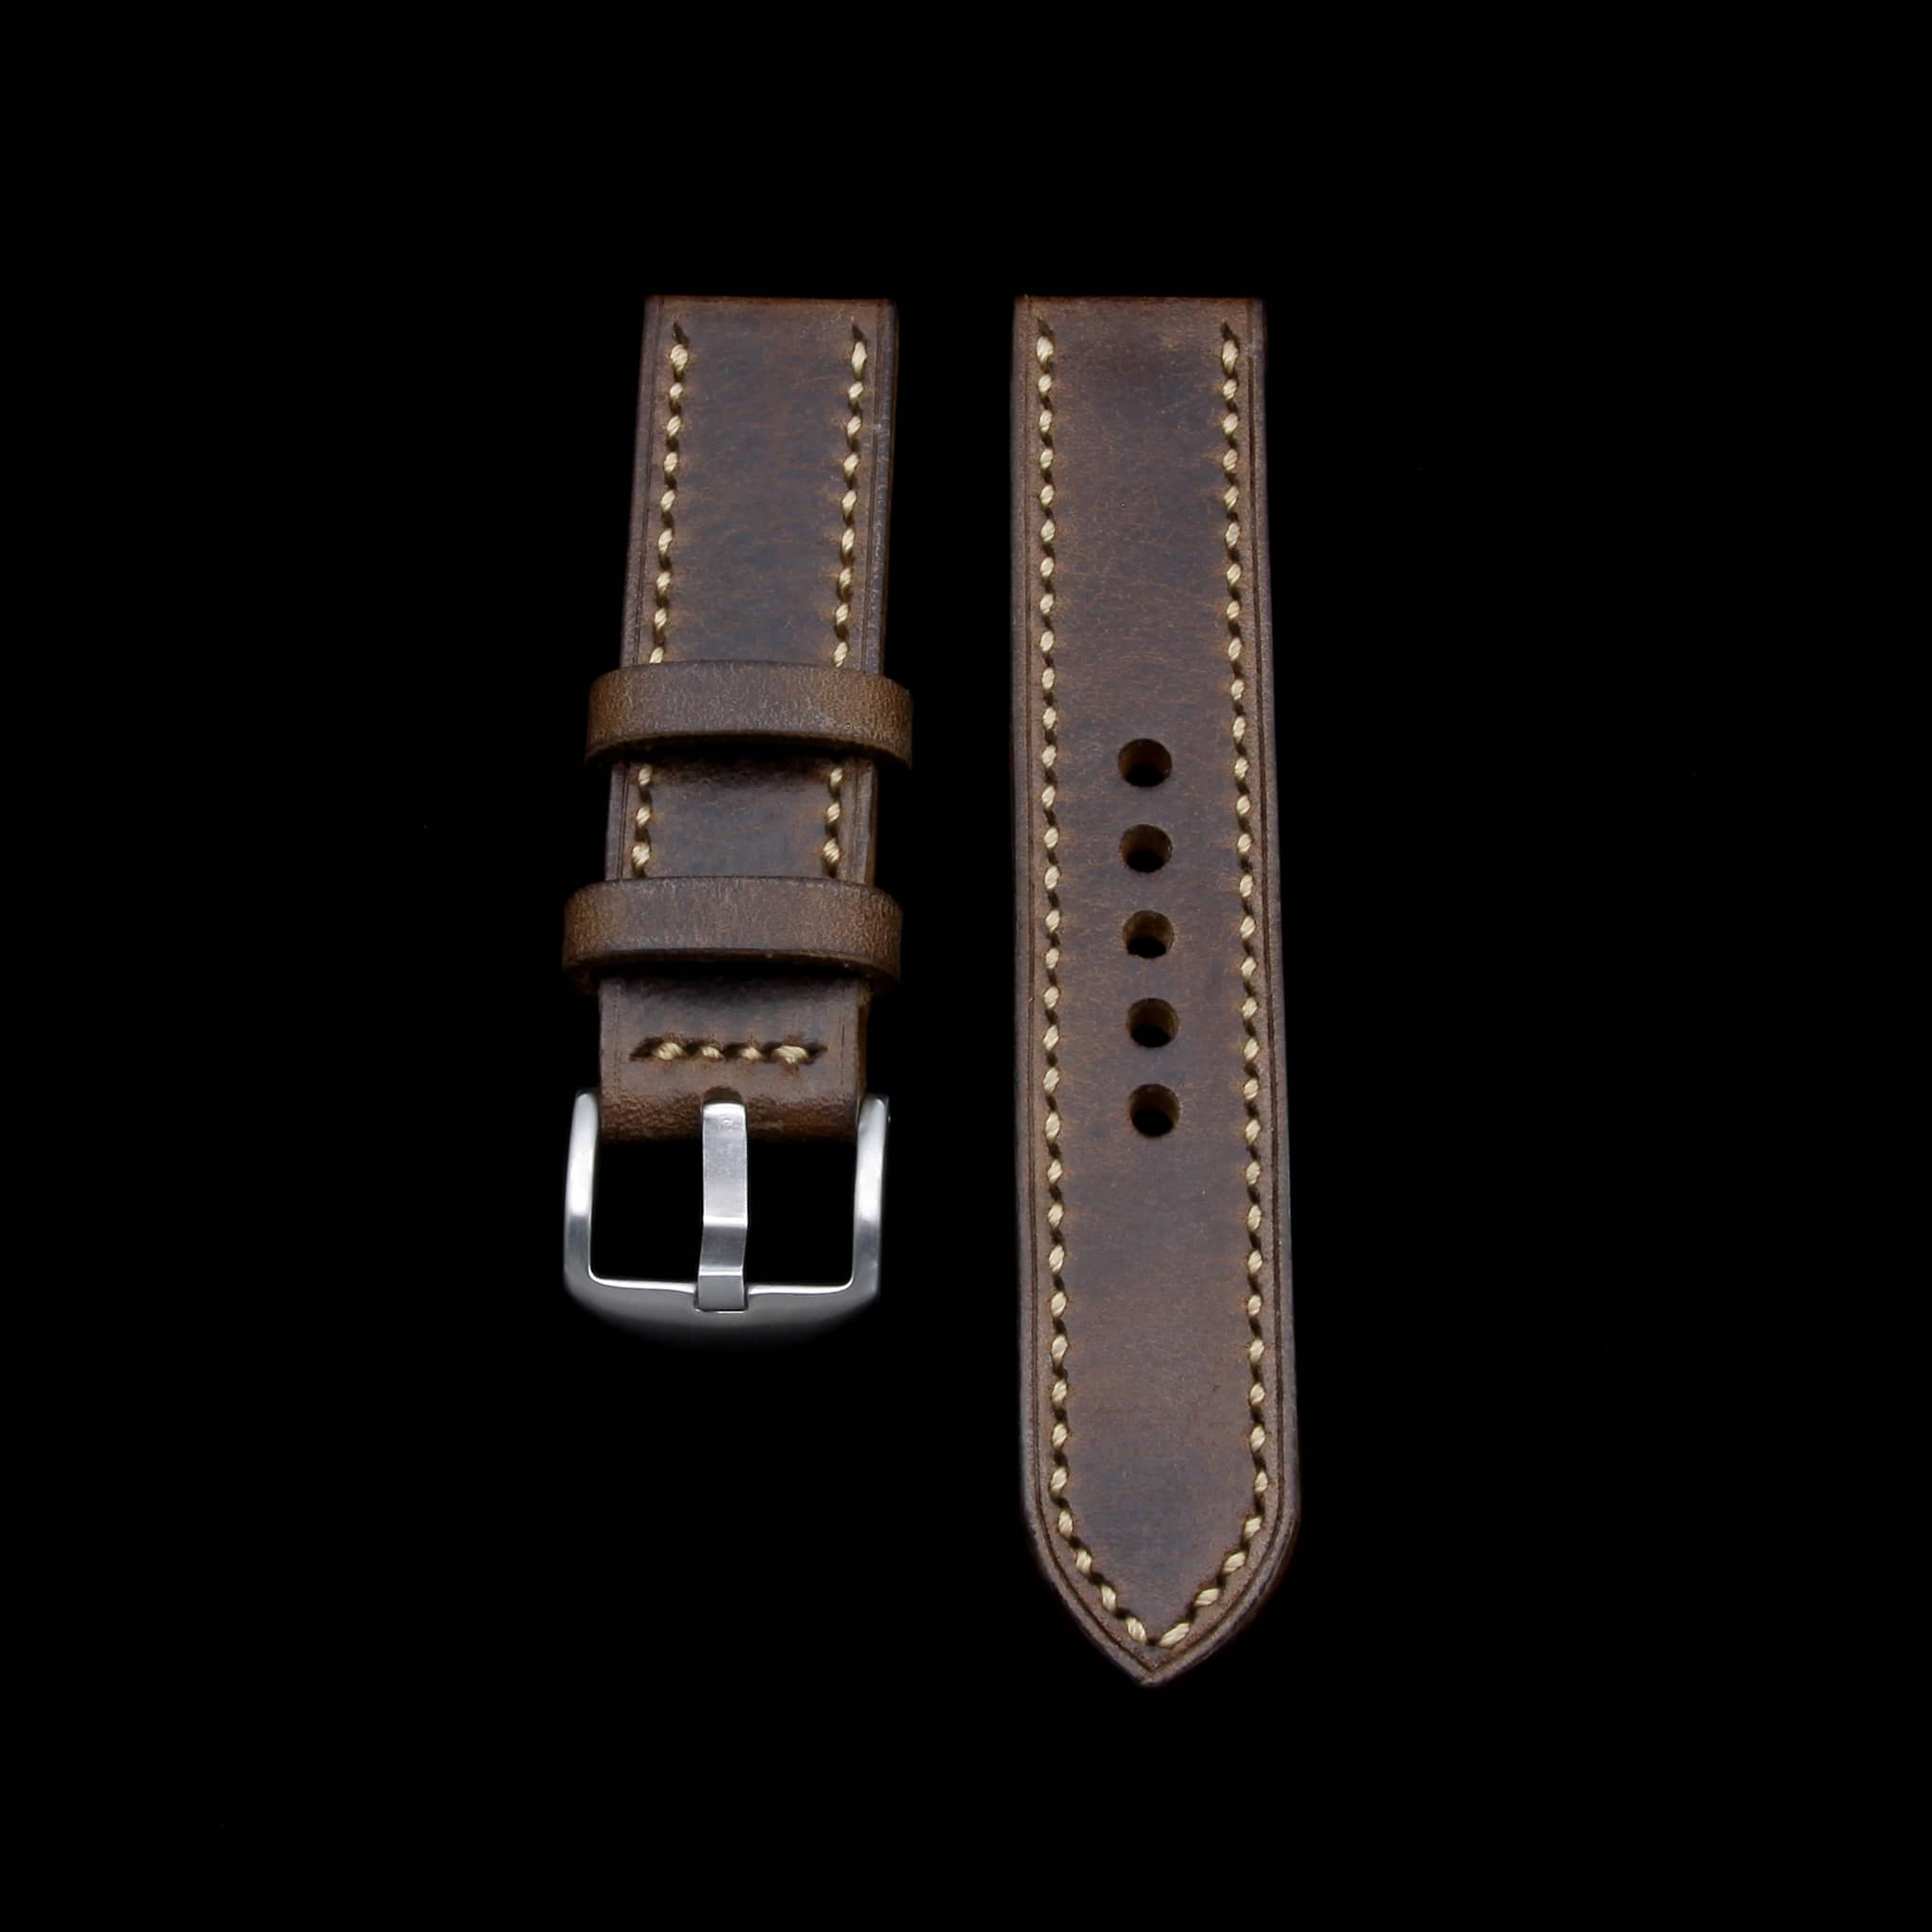 Leather Watch Strap, Douglas 110 (Dark Reddish Brown) | Full Stitch | Cozy Handmade